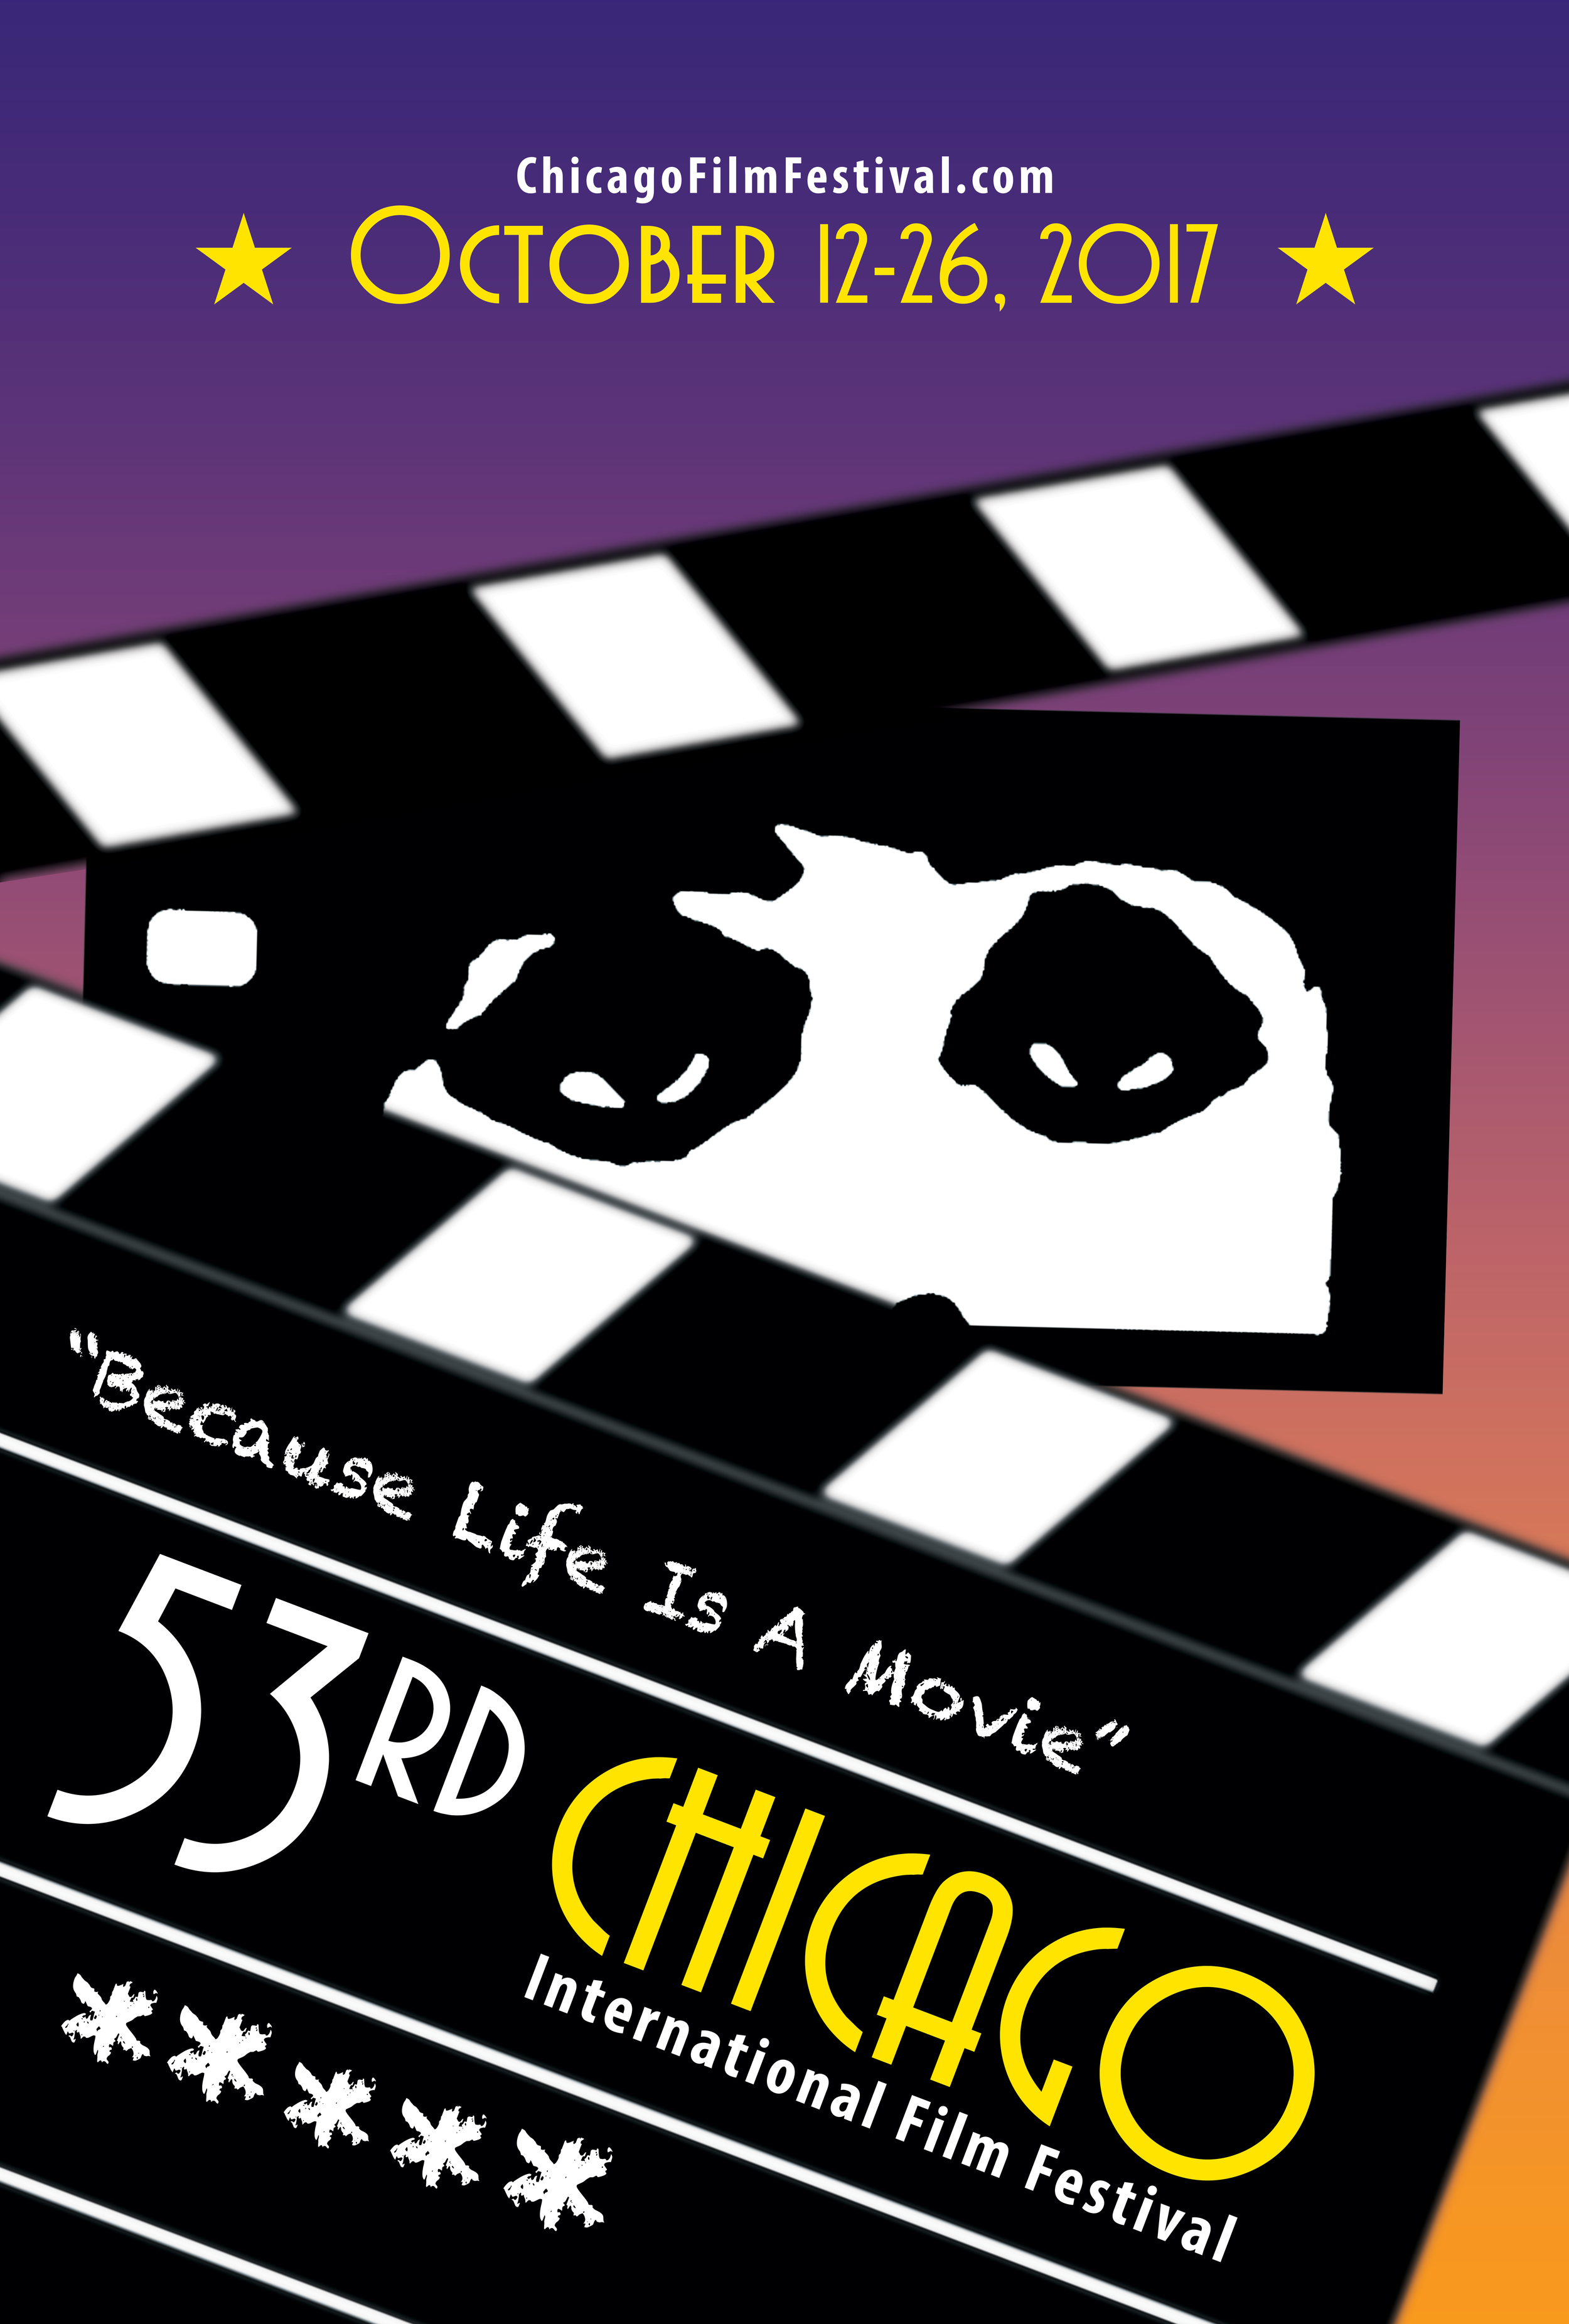 Because Life Is A Movie - Poster size: 27 x 40 (inch)This poster is my submission for the 53rd Chicago International Film Festival Poster Design Competition which themes is